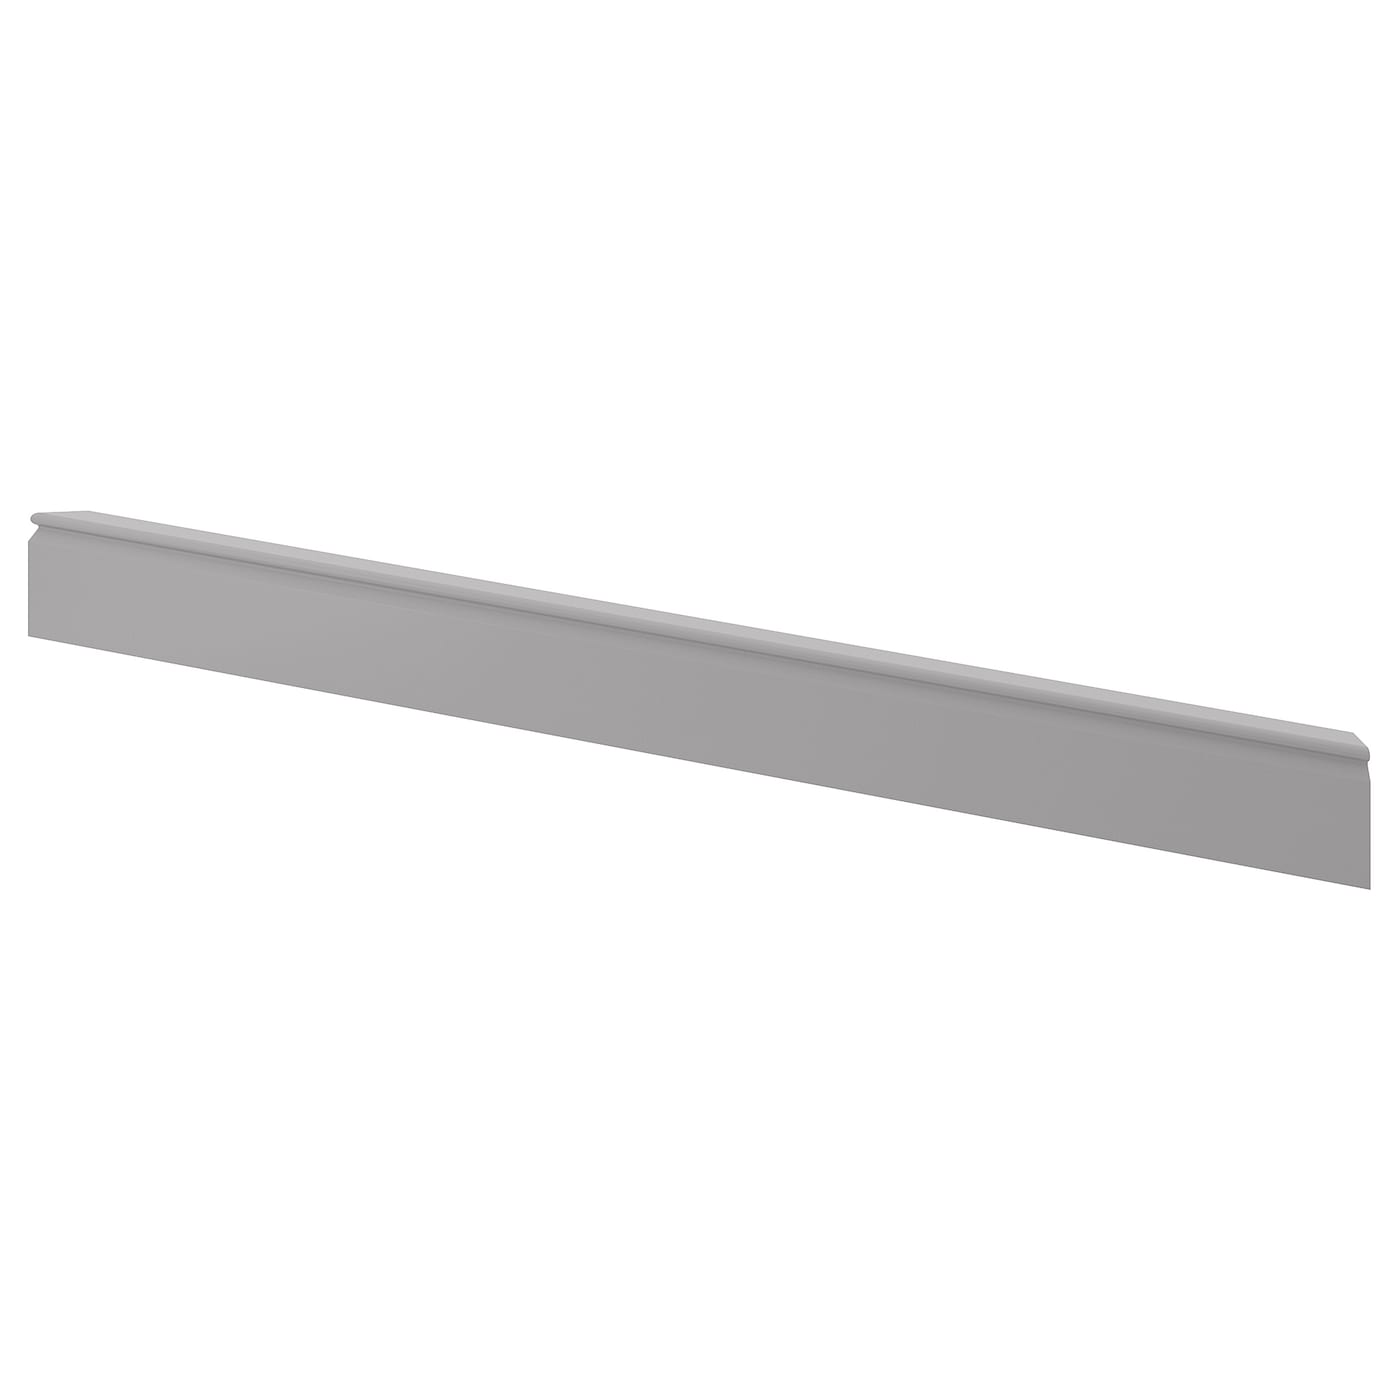 IKEA BODBYN decorative plinth 25 year guarantee. Read about the terms in the guarantee brochure.